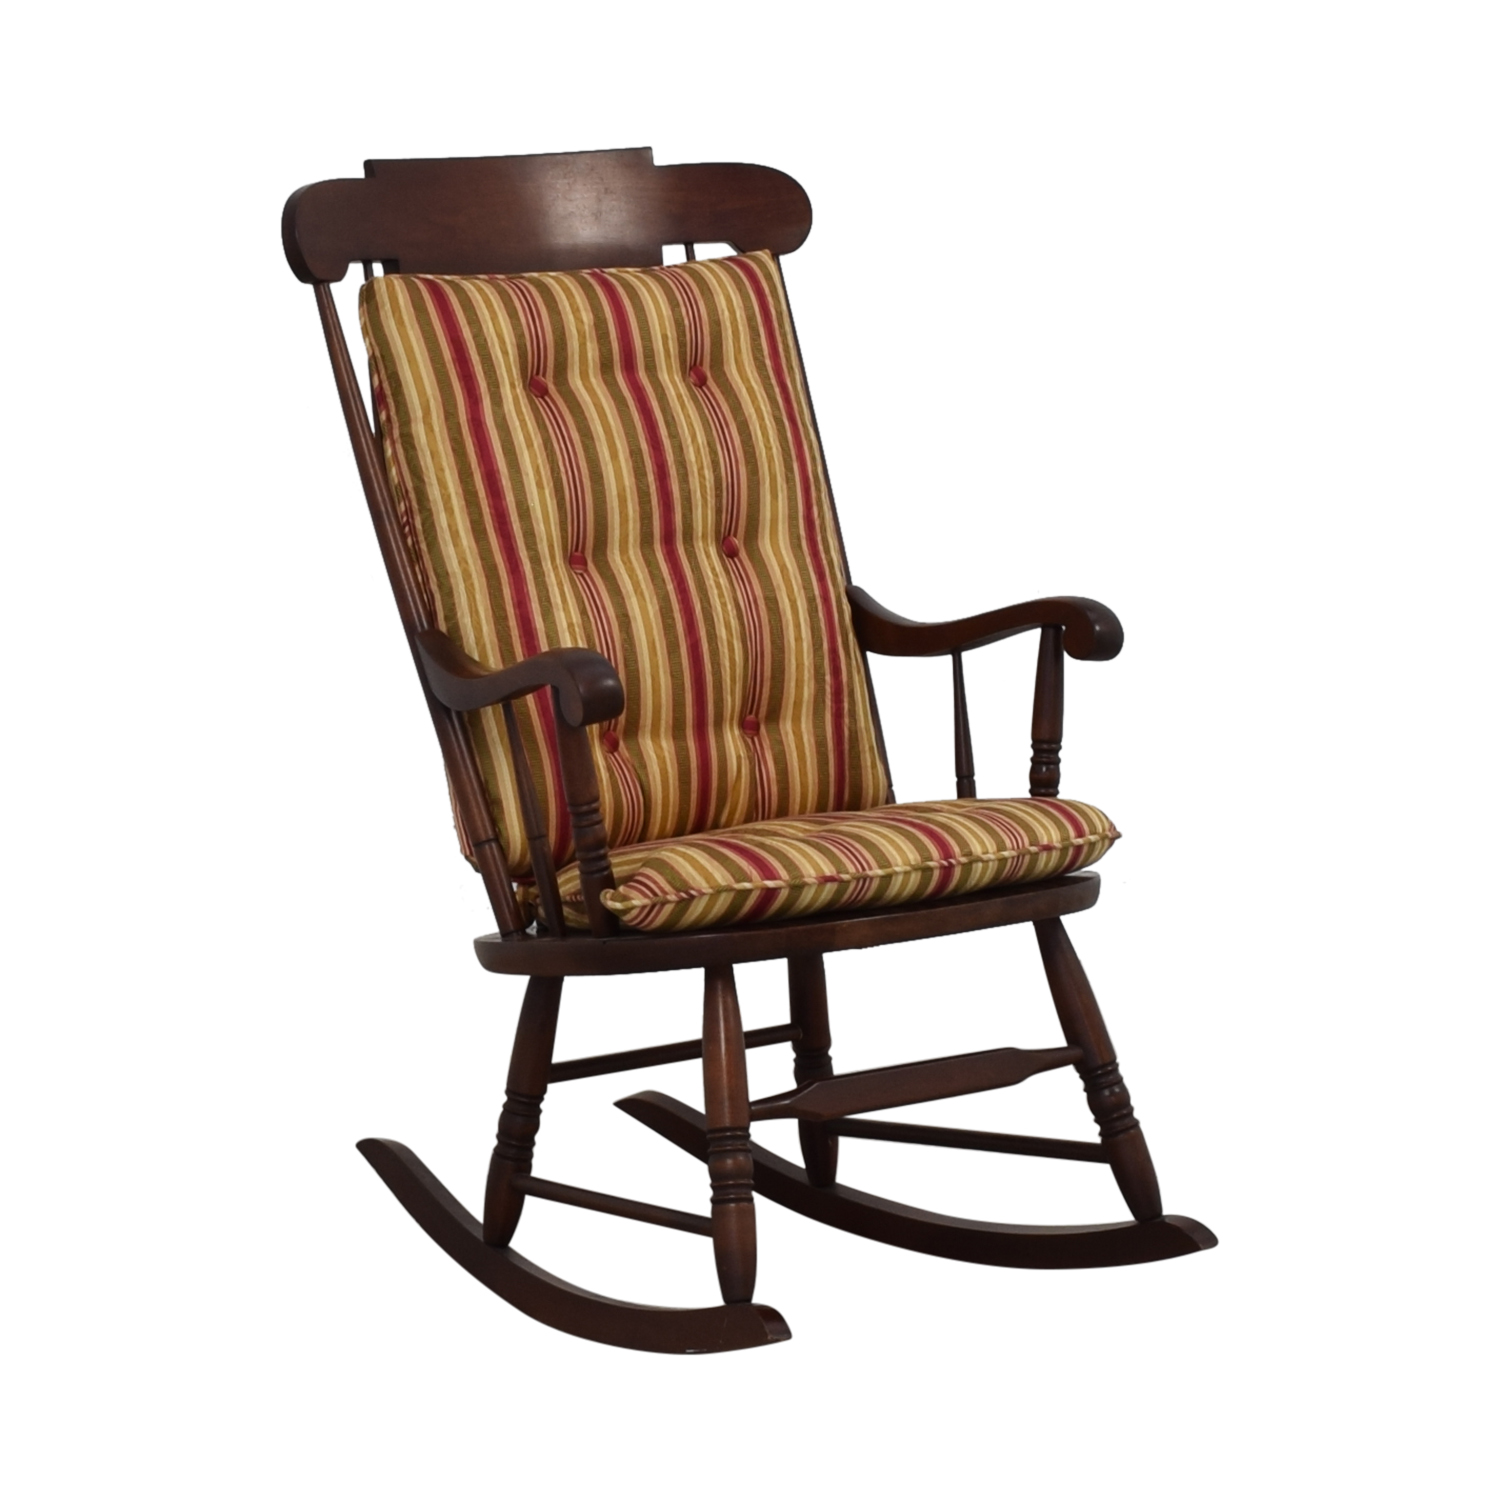 Groovy 75 Off Hitchcock Hitchcock Wooden Rocking Chair Chairs Download Free Architecture Designs Estepponolmadebymaigaardcom